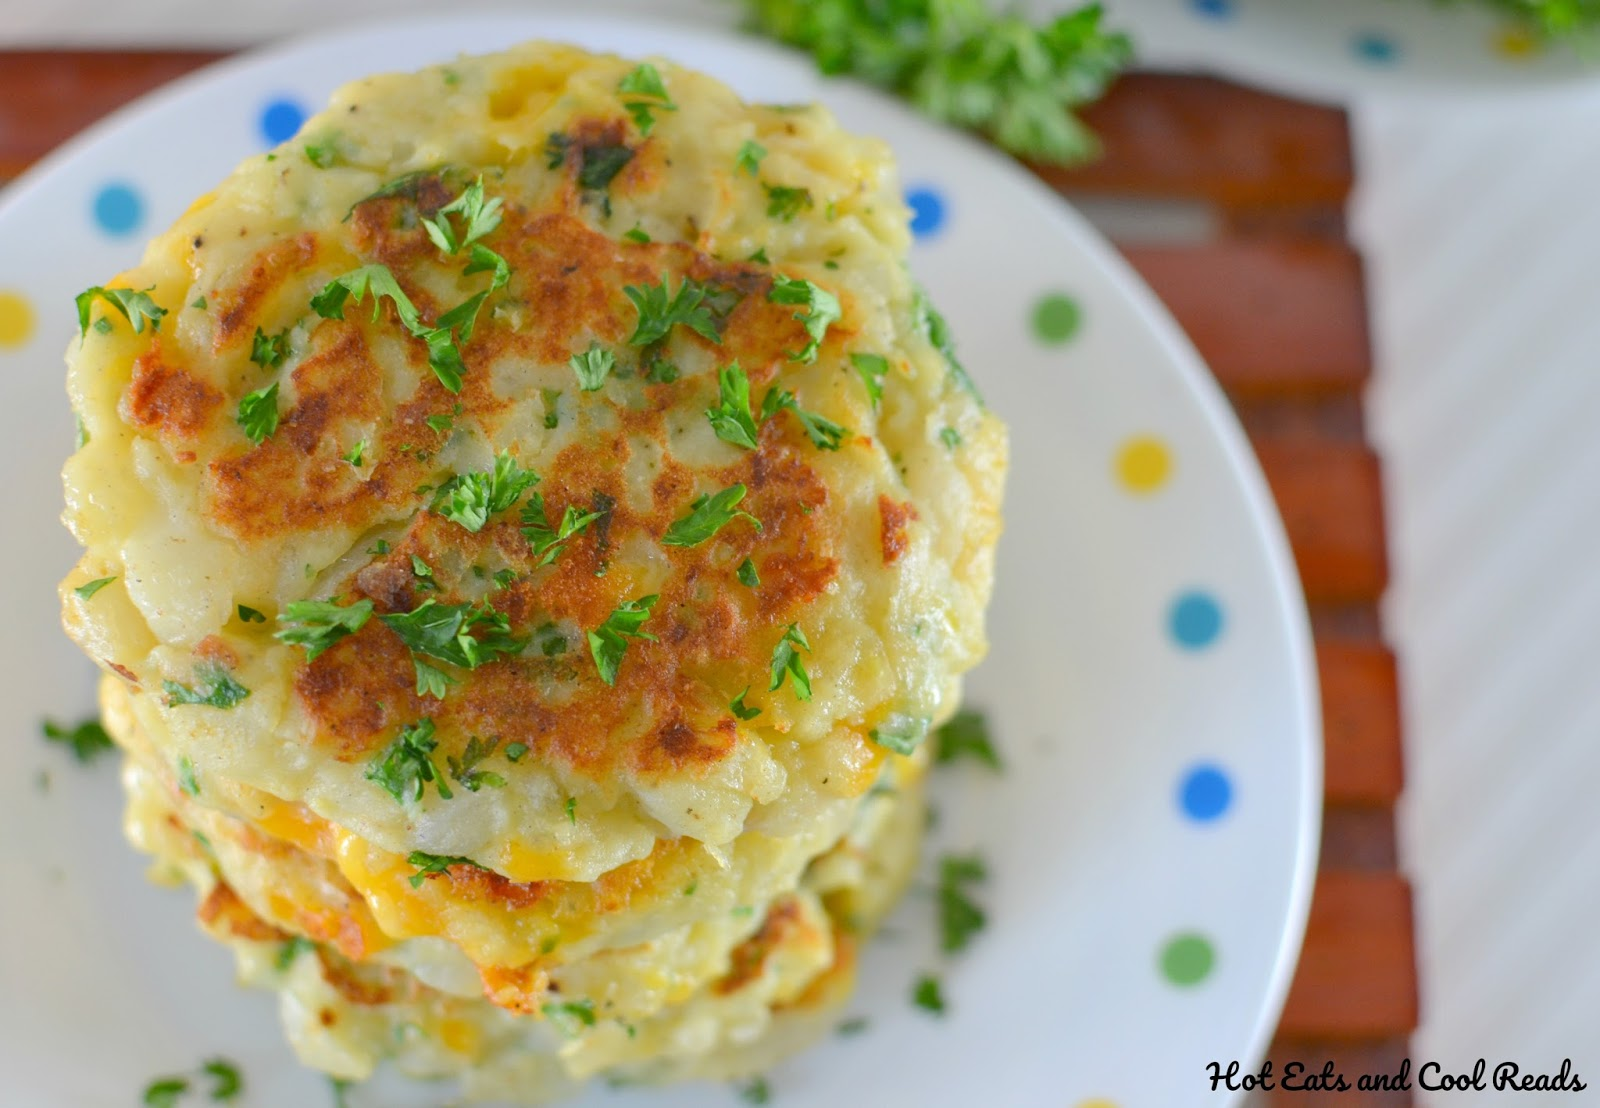 This is one of the best recipes to use leftover mashed potatoes, especially after the holidays! A mixture of fresh herbs, garlic and some cheesy goodness makes this potato pancake perfection!